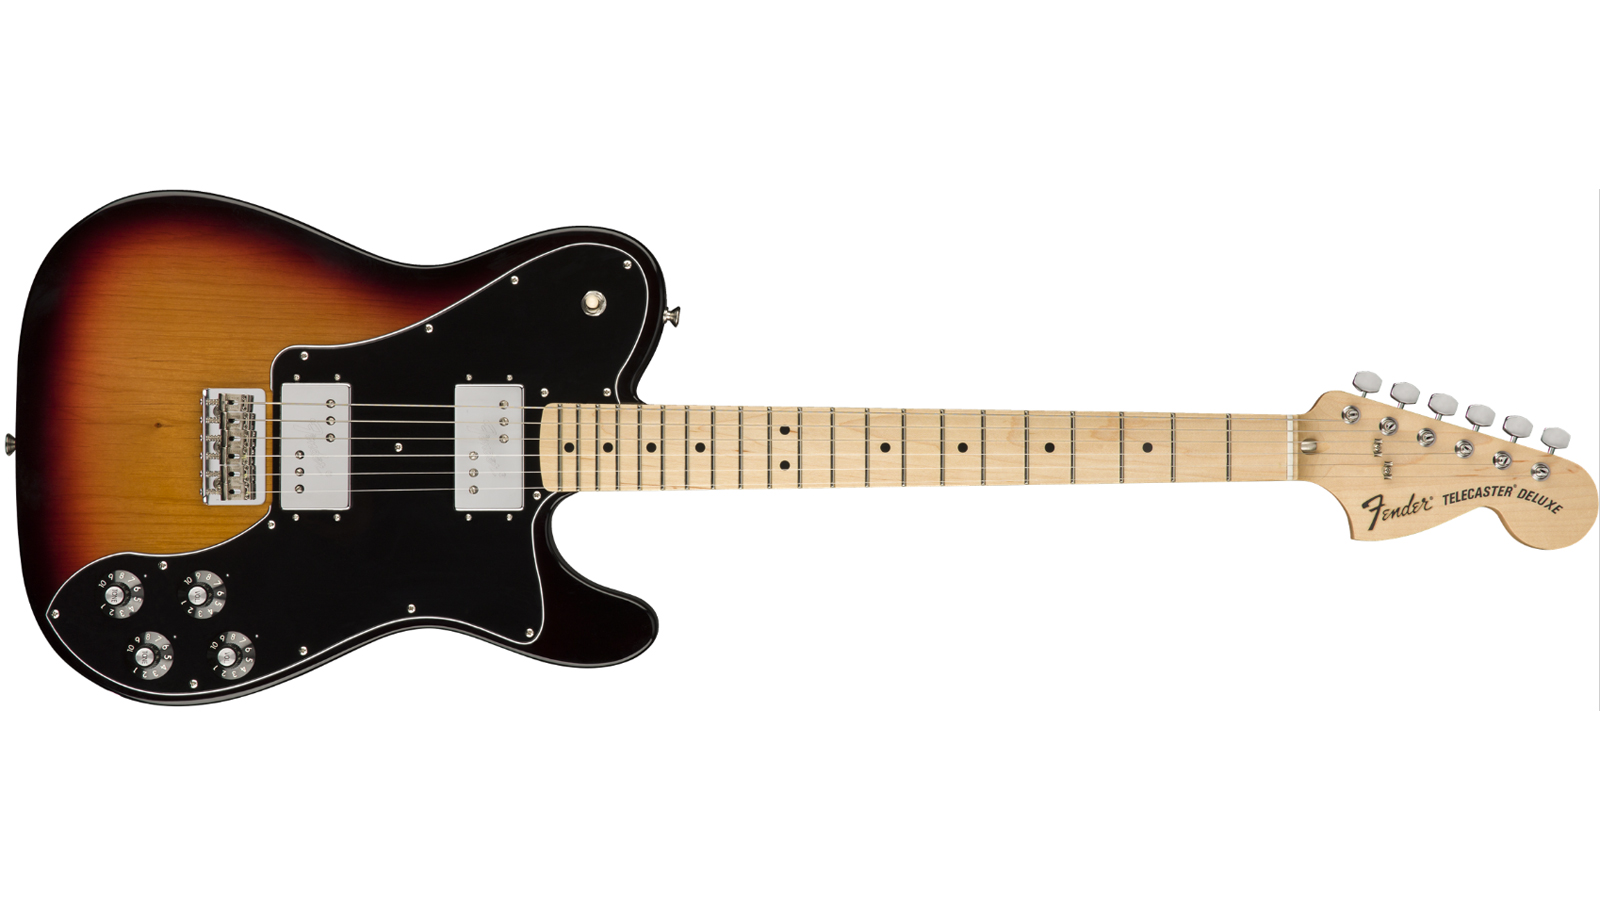 Fender Classic Series '72 Telecaster DLX MN 3CSB